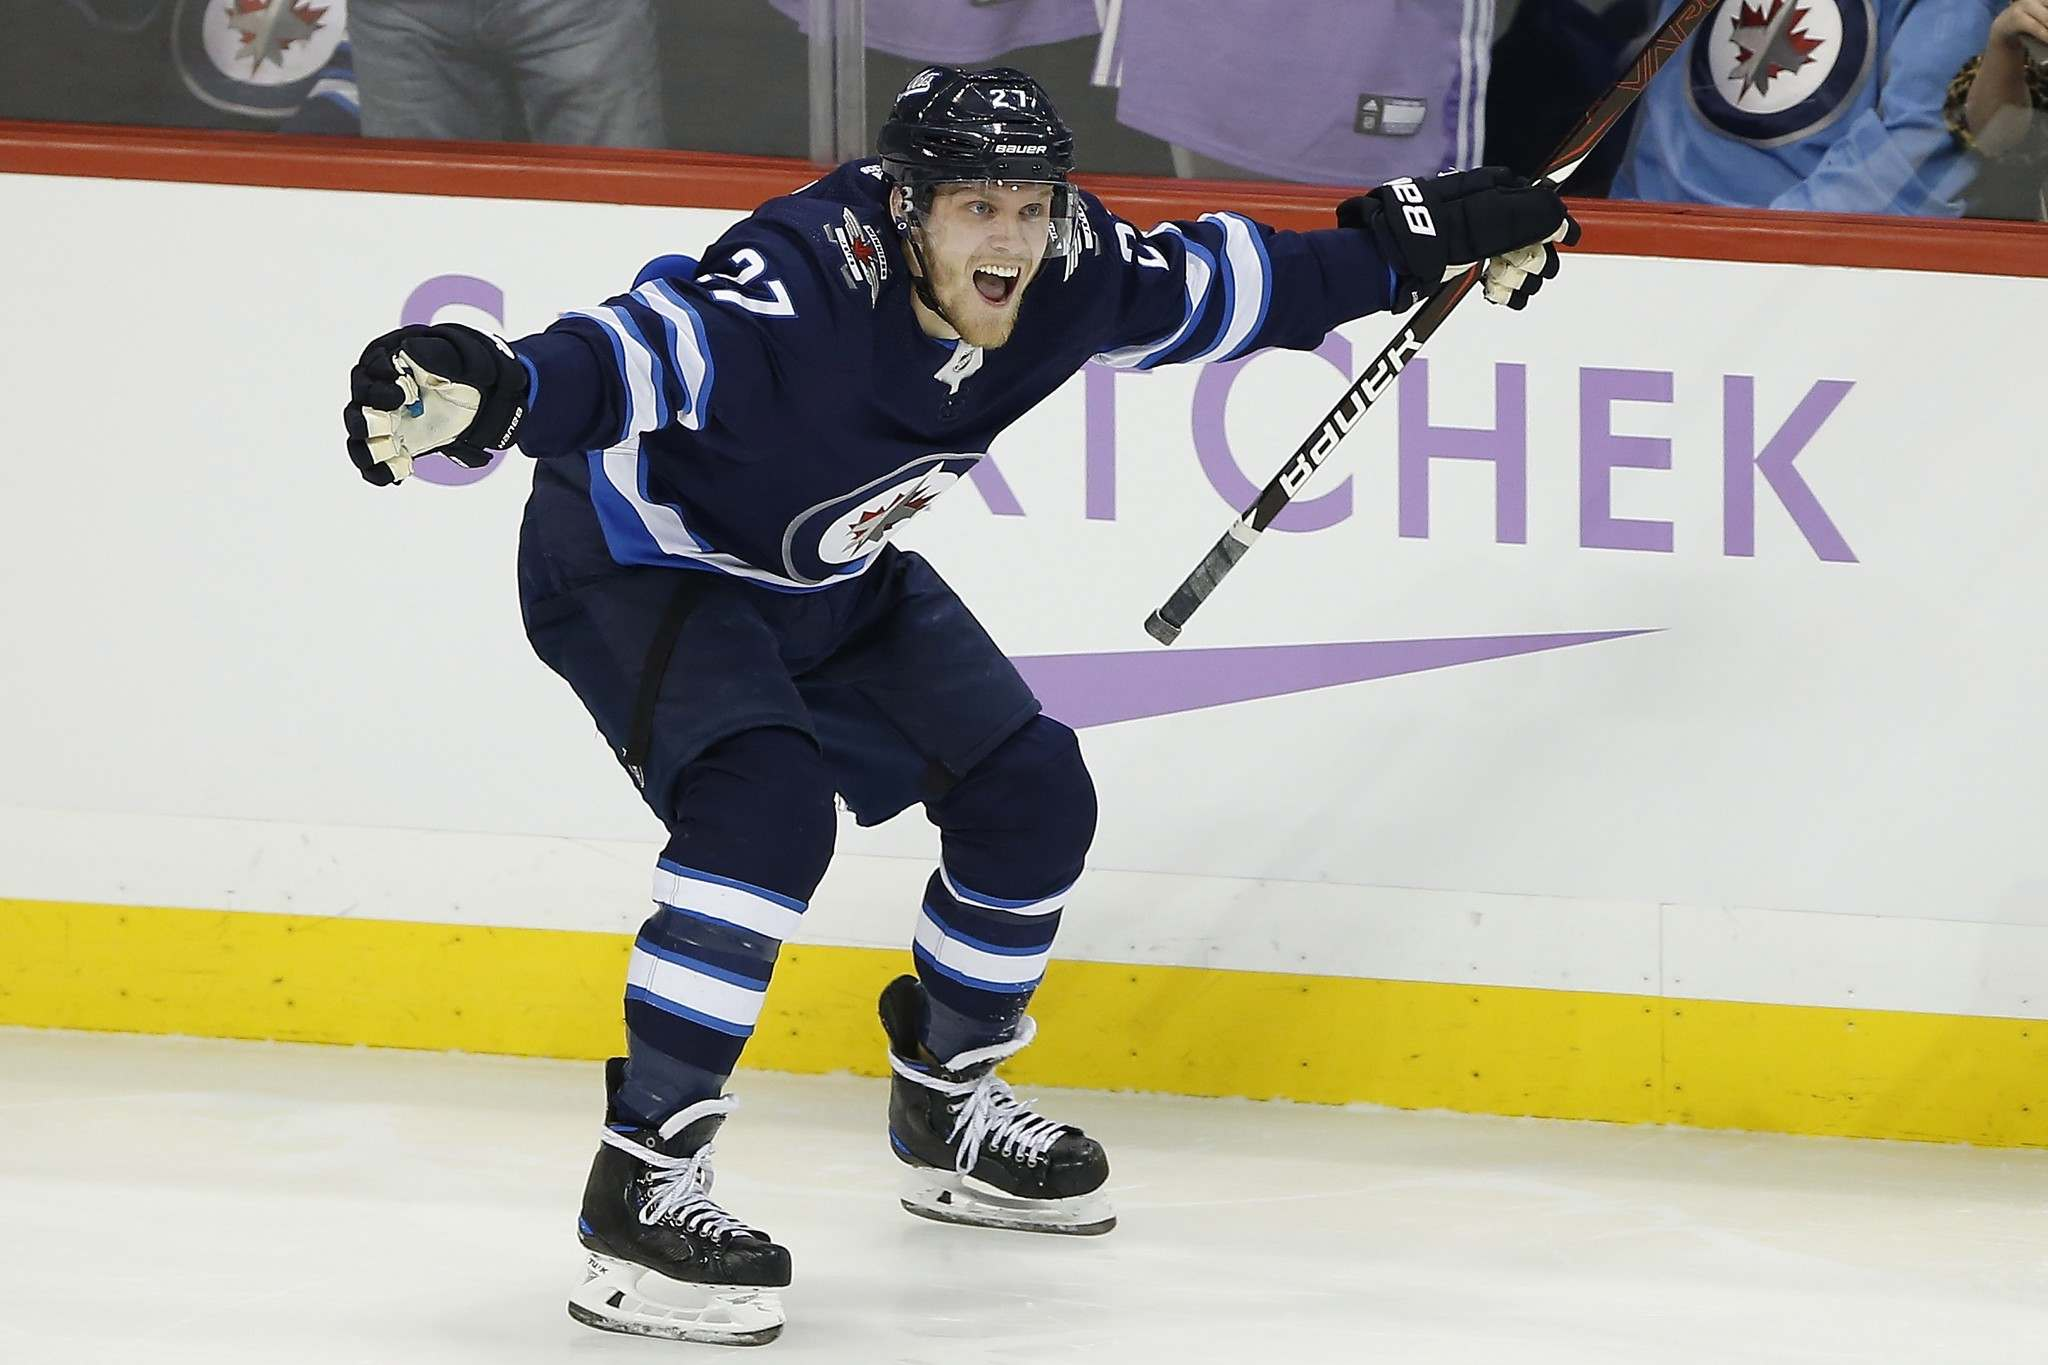 JOHN WOODS / THE CANADIAN PRESS FILES <p /></p><p>Nikolaj Ehlers has been on fire of late, seen here celebrating a hat trick against the Chicago Blackhawks Nov. 29, a trick he'd repeat on the road against the San Jose Sharks Dec. 20.</p>